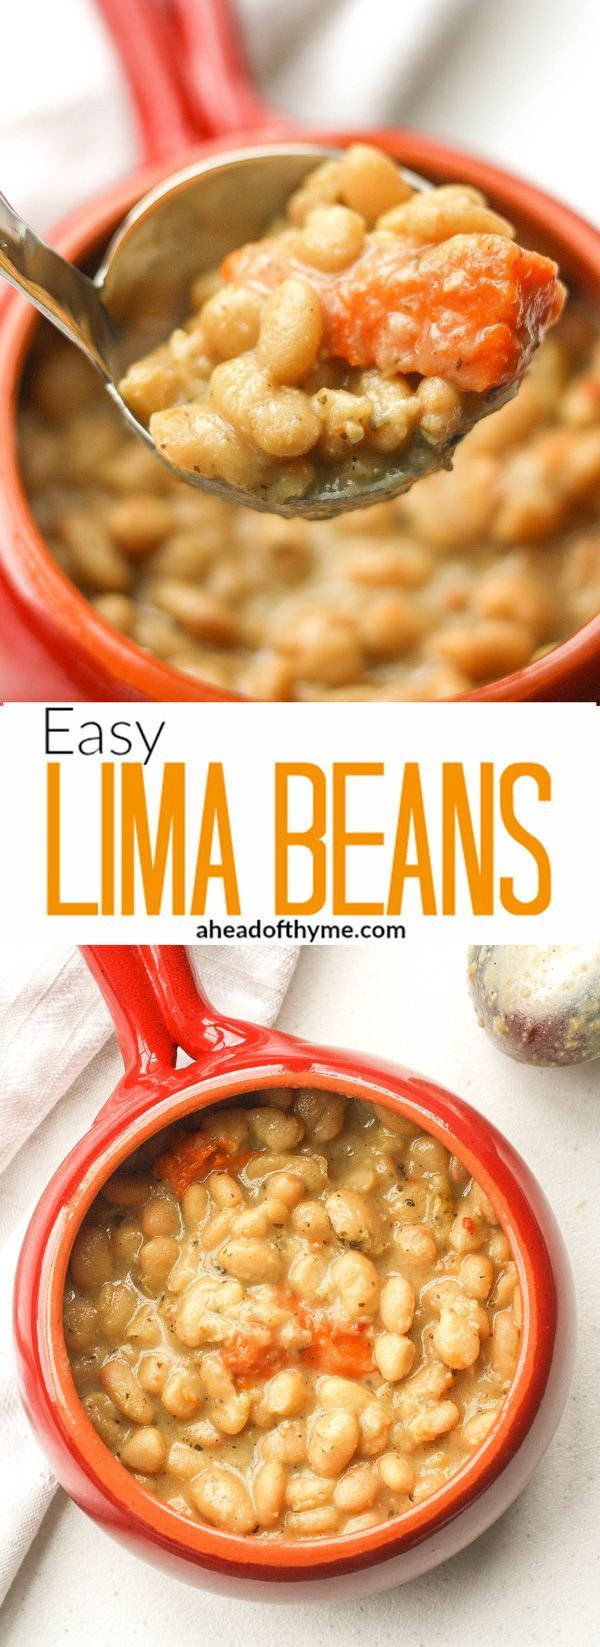 Easy Lima Beans: Lima beans don't have to be boring and bland. Bring them to life by making them tasty and full of flavour with this easy to follow recipe